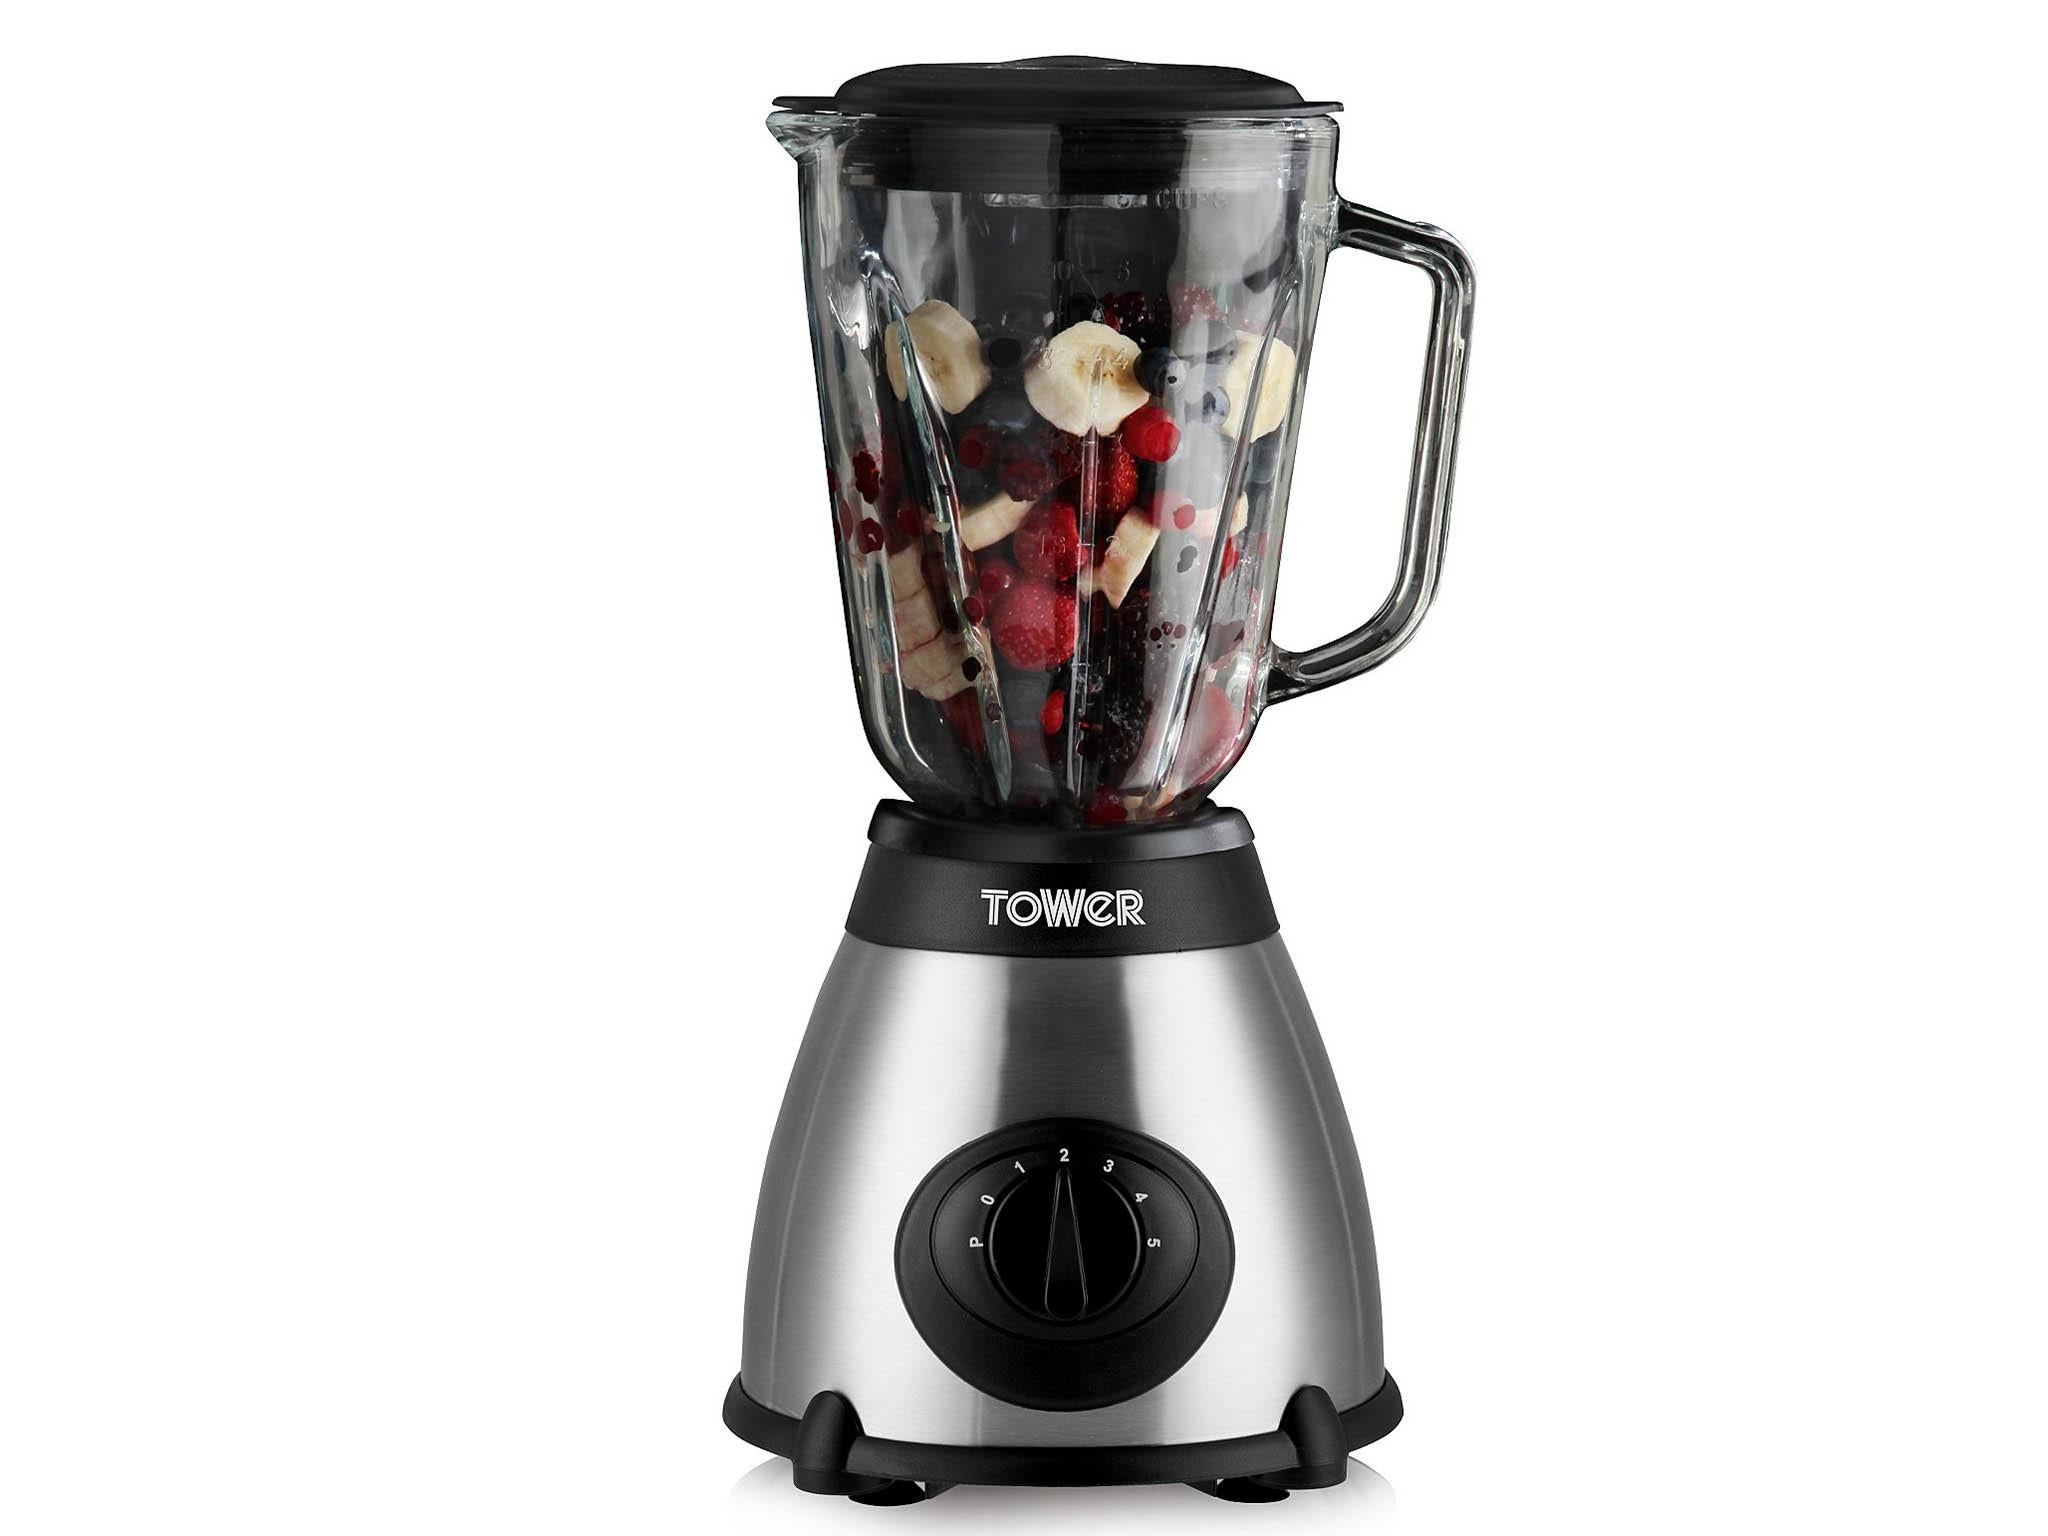 Tower T12008 Glass Blender, £29.99, Asda